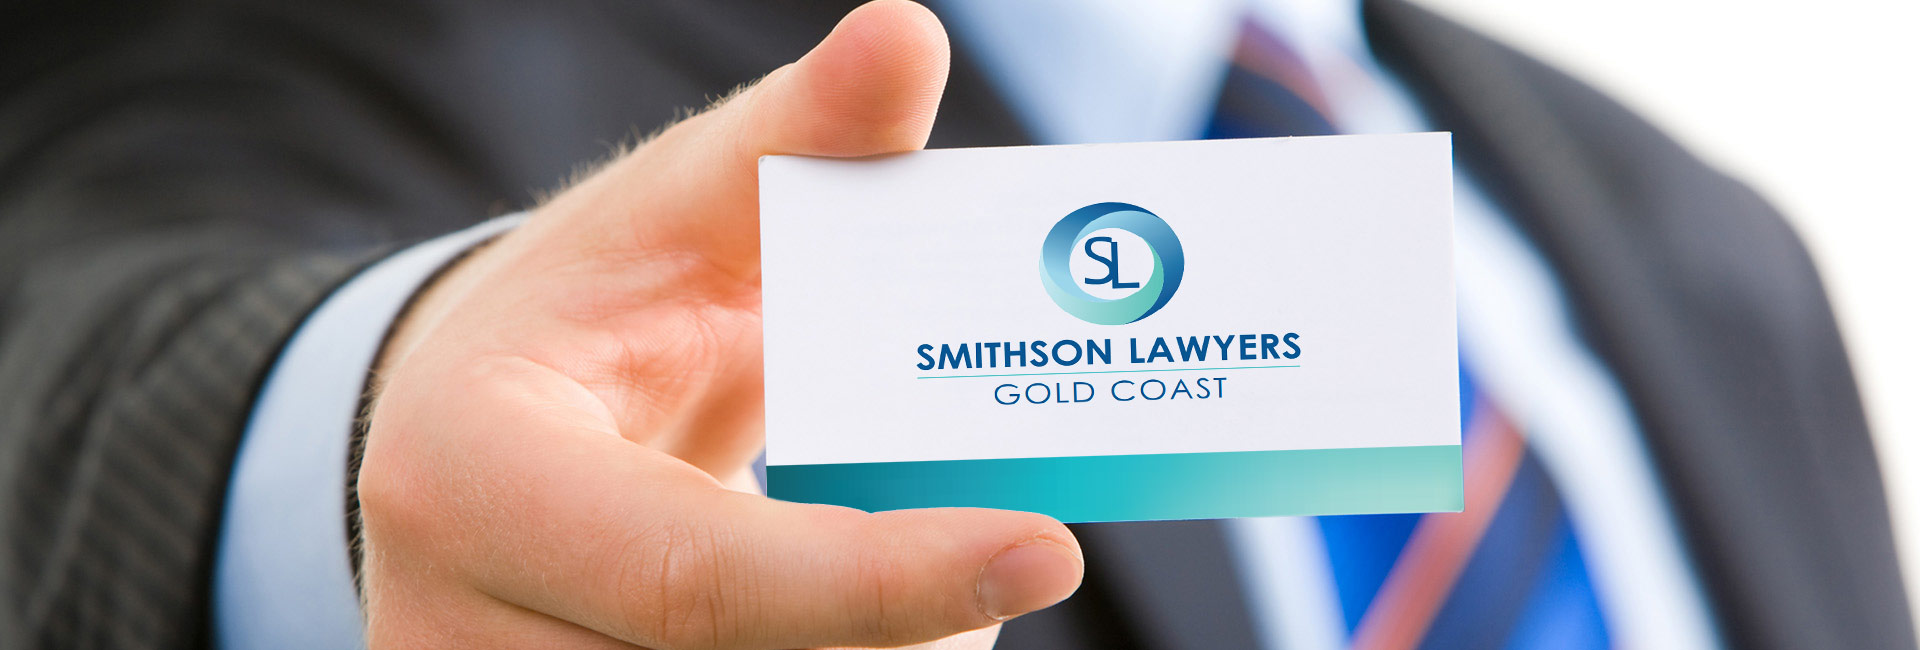 Person holding a business card